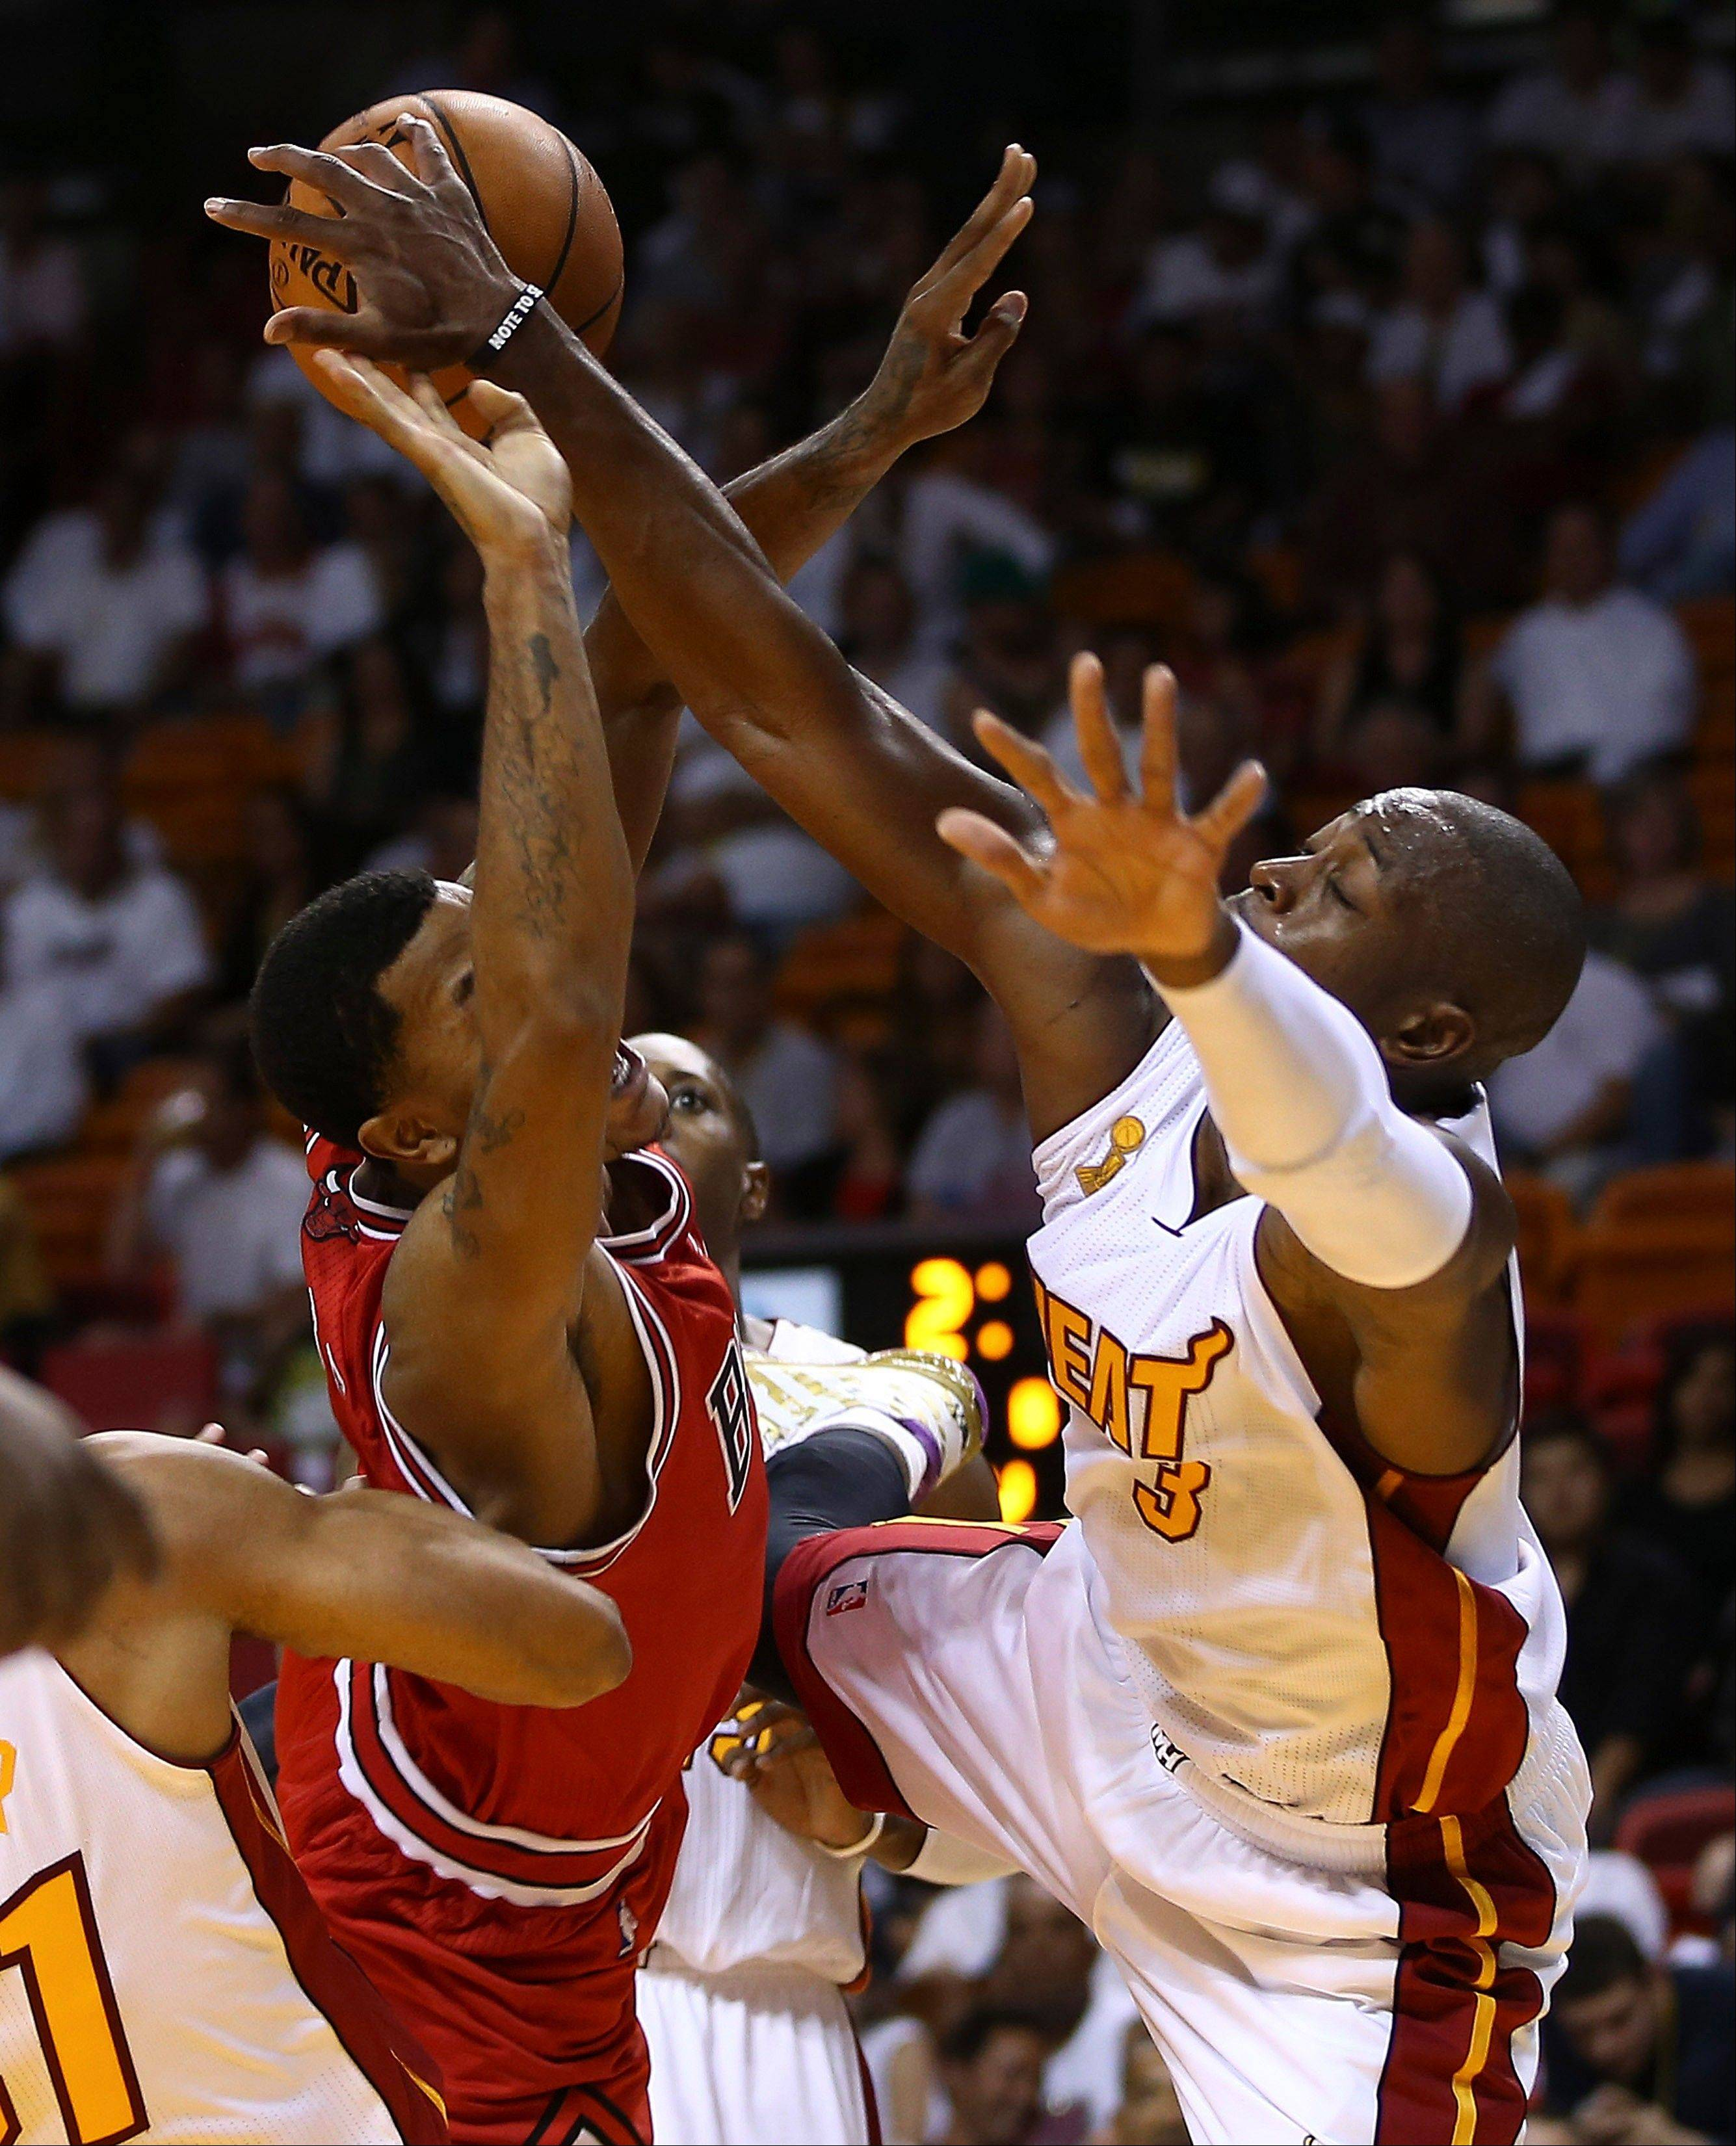 Miami Heat's Dwyane Wade (3) blocks a shot by Chicago Bulls' Derrick Rose during the second half of an NBA basketball game in Miami, Tuesday, Oct. 29, 2013. The Heat won 107-95.